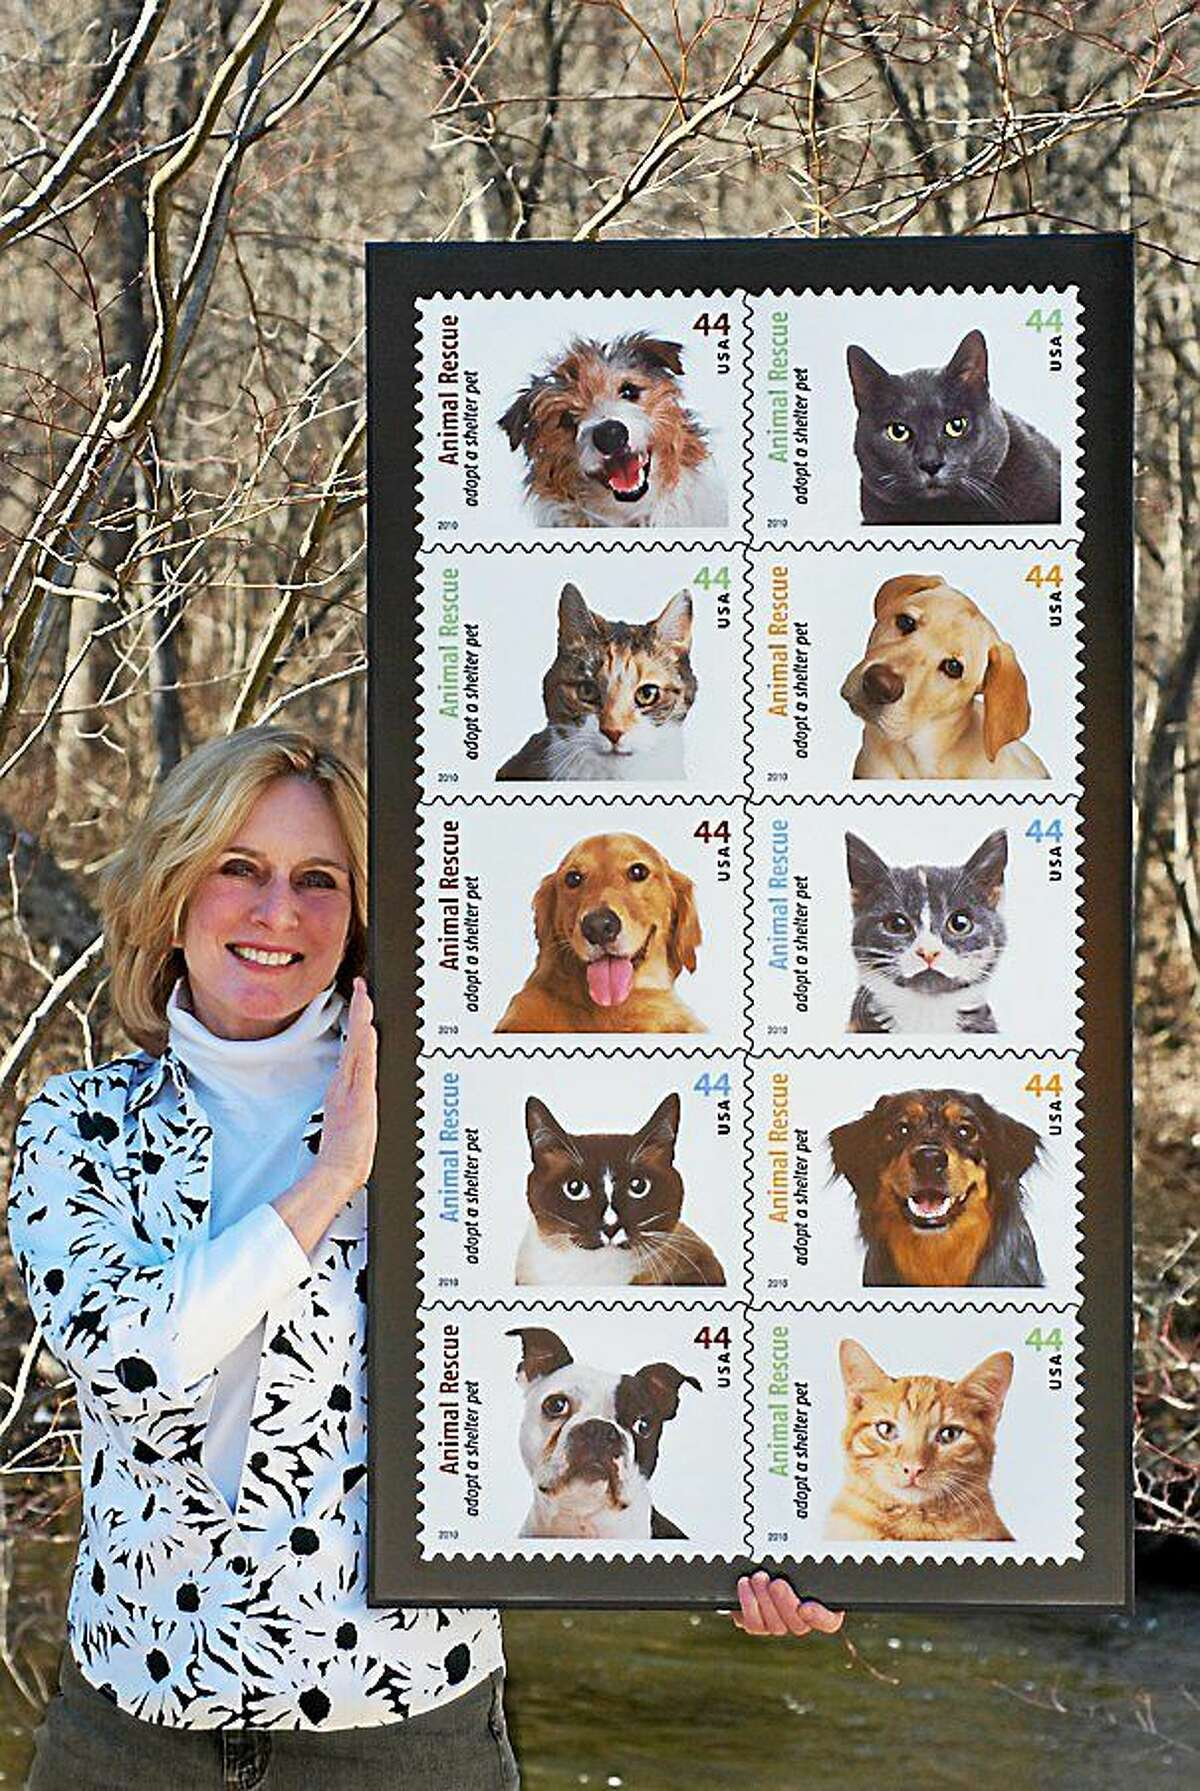 The Womenís Forum of Litchfield welcomes Sally Andersen-Bruce, an acclaimed photographer from New Milford, to speak on ìFrom S&H Green Stamps to U.S. Postage Stampsî at the Litchfield Community Center at 421 Bantam Road in Litchfield on Thursday, May 7, beginning at 2:30pm. The event will be open to non-Forum members with a $10 fee at the door, which includes a High Tea reception. The contacts for more information are 860.605.7027 and womensforumoflitchfield.org...